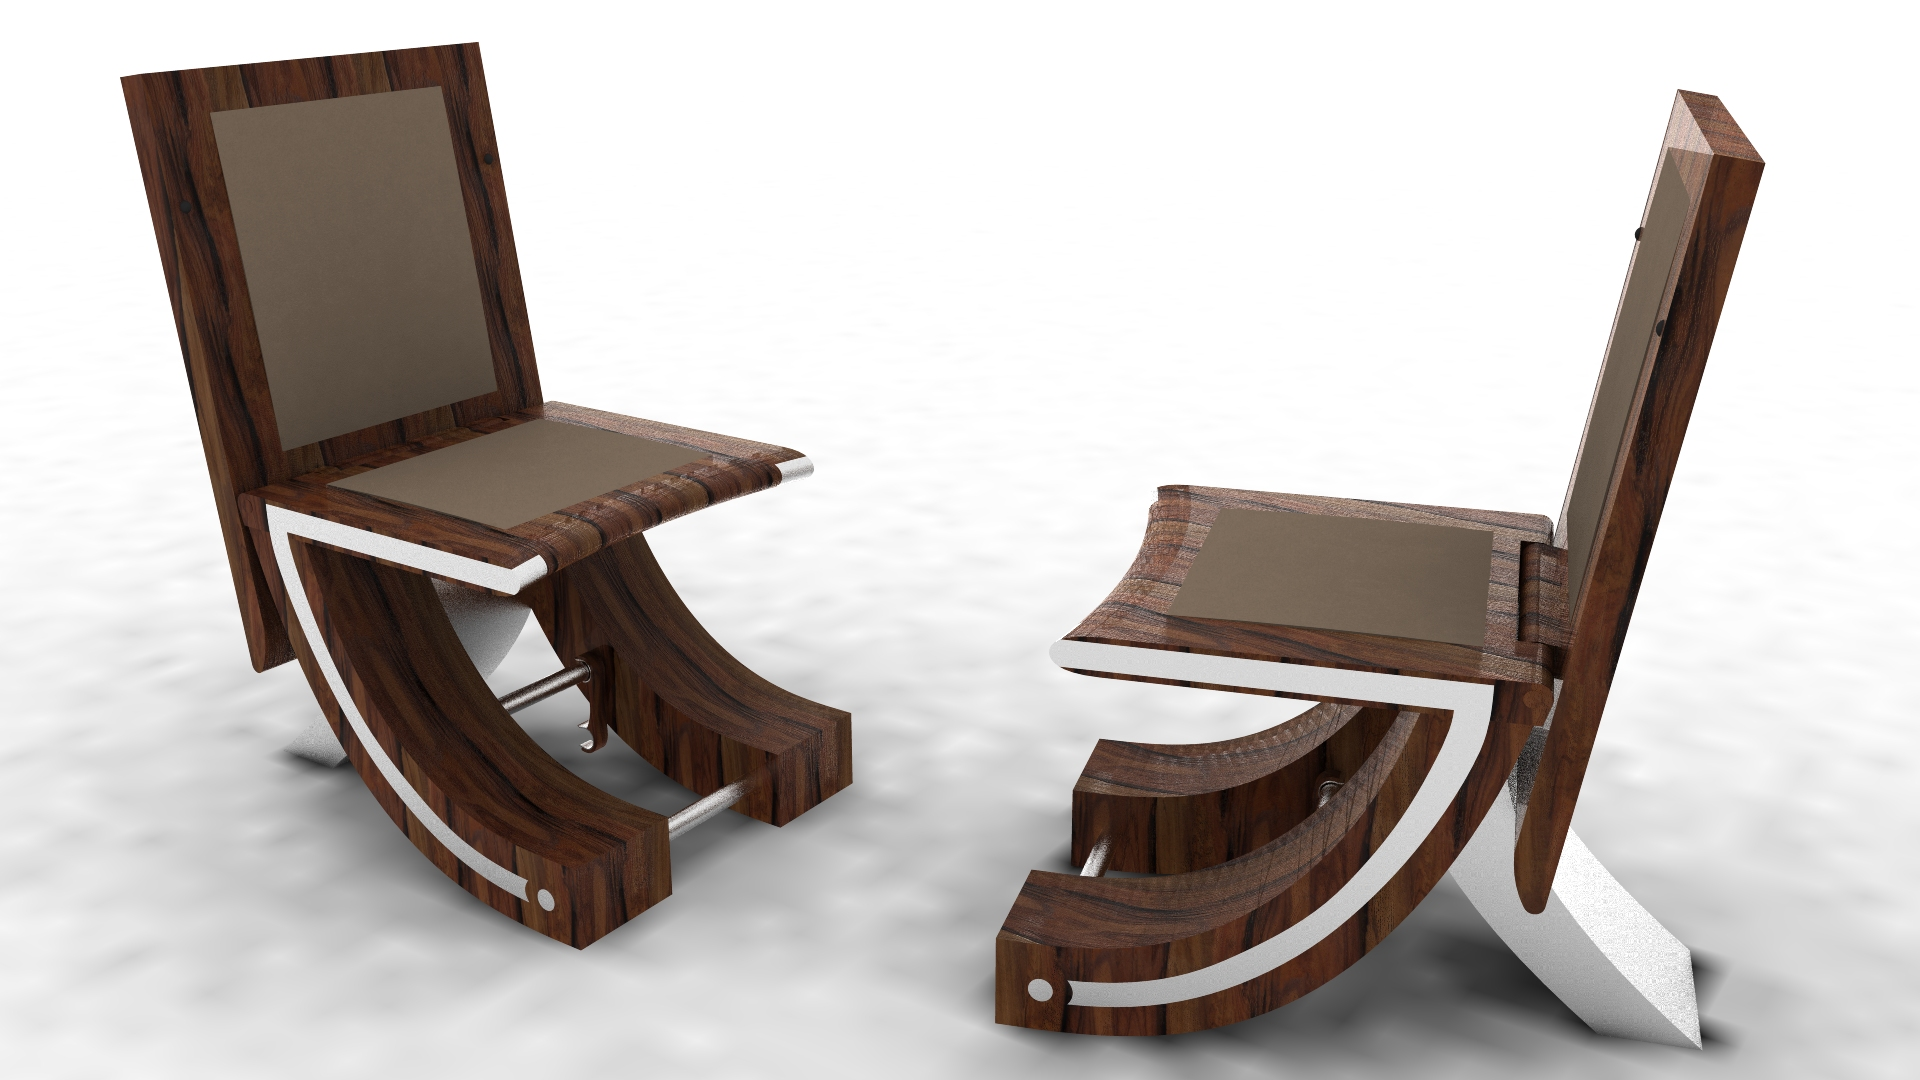 Coffee Table With Seats Underneath Concept As 2 Lounge Chairs